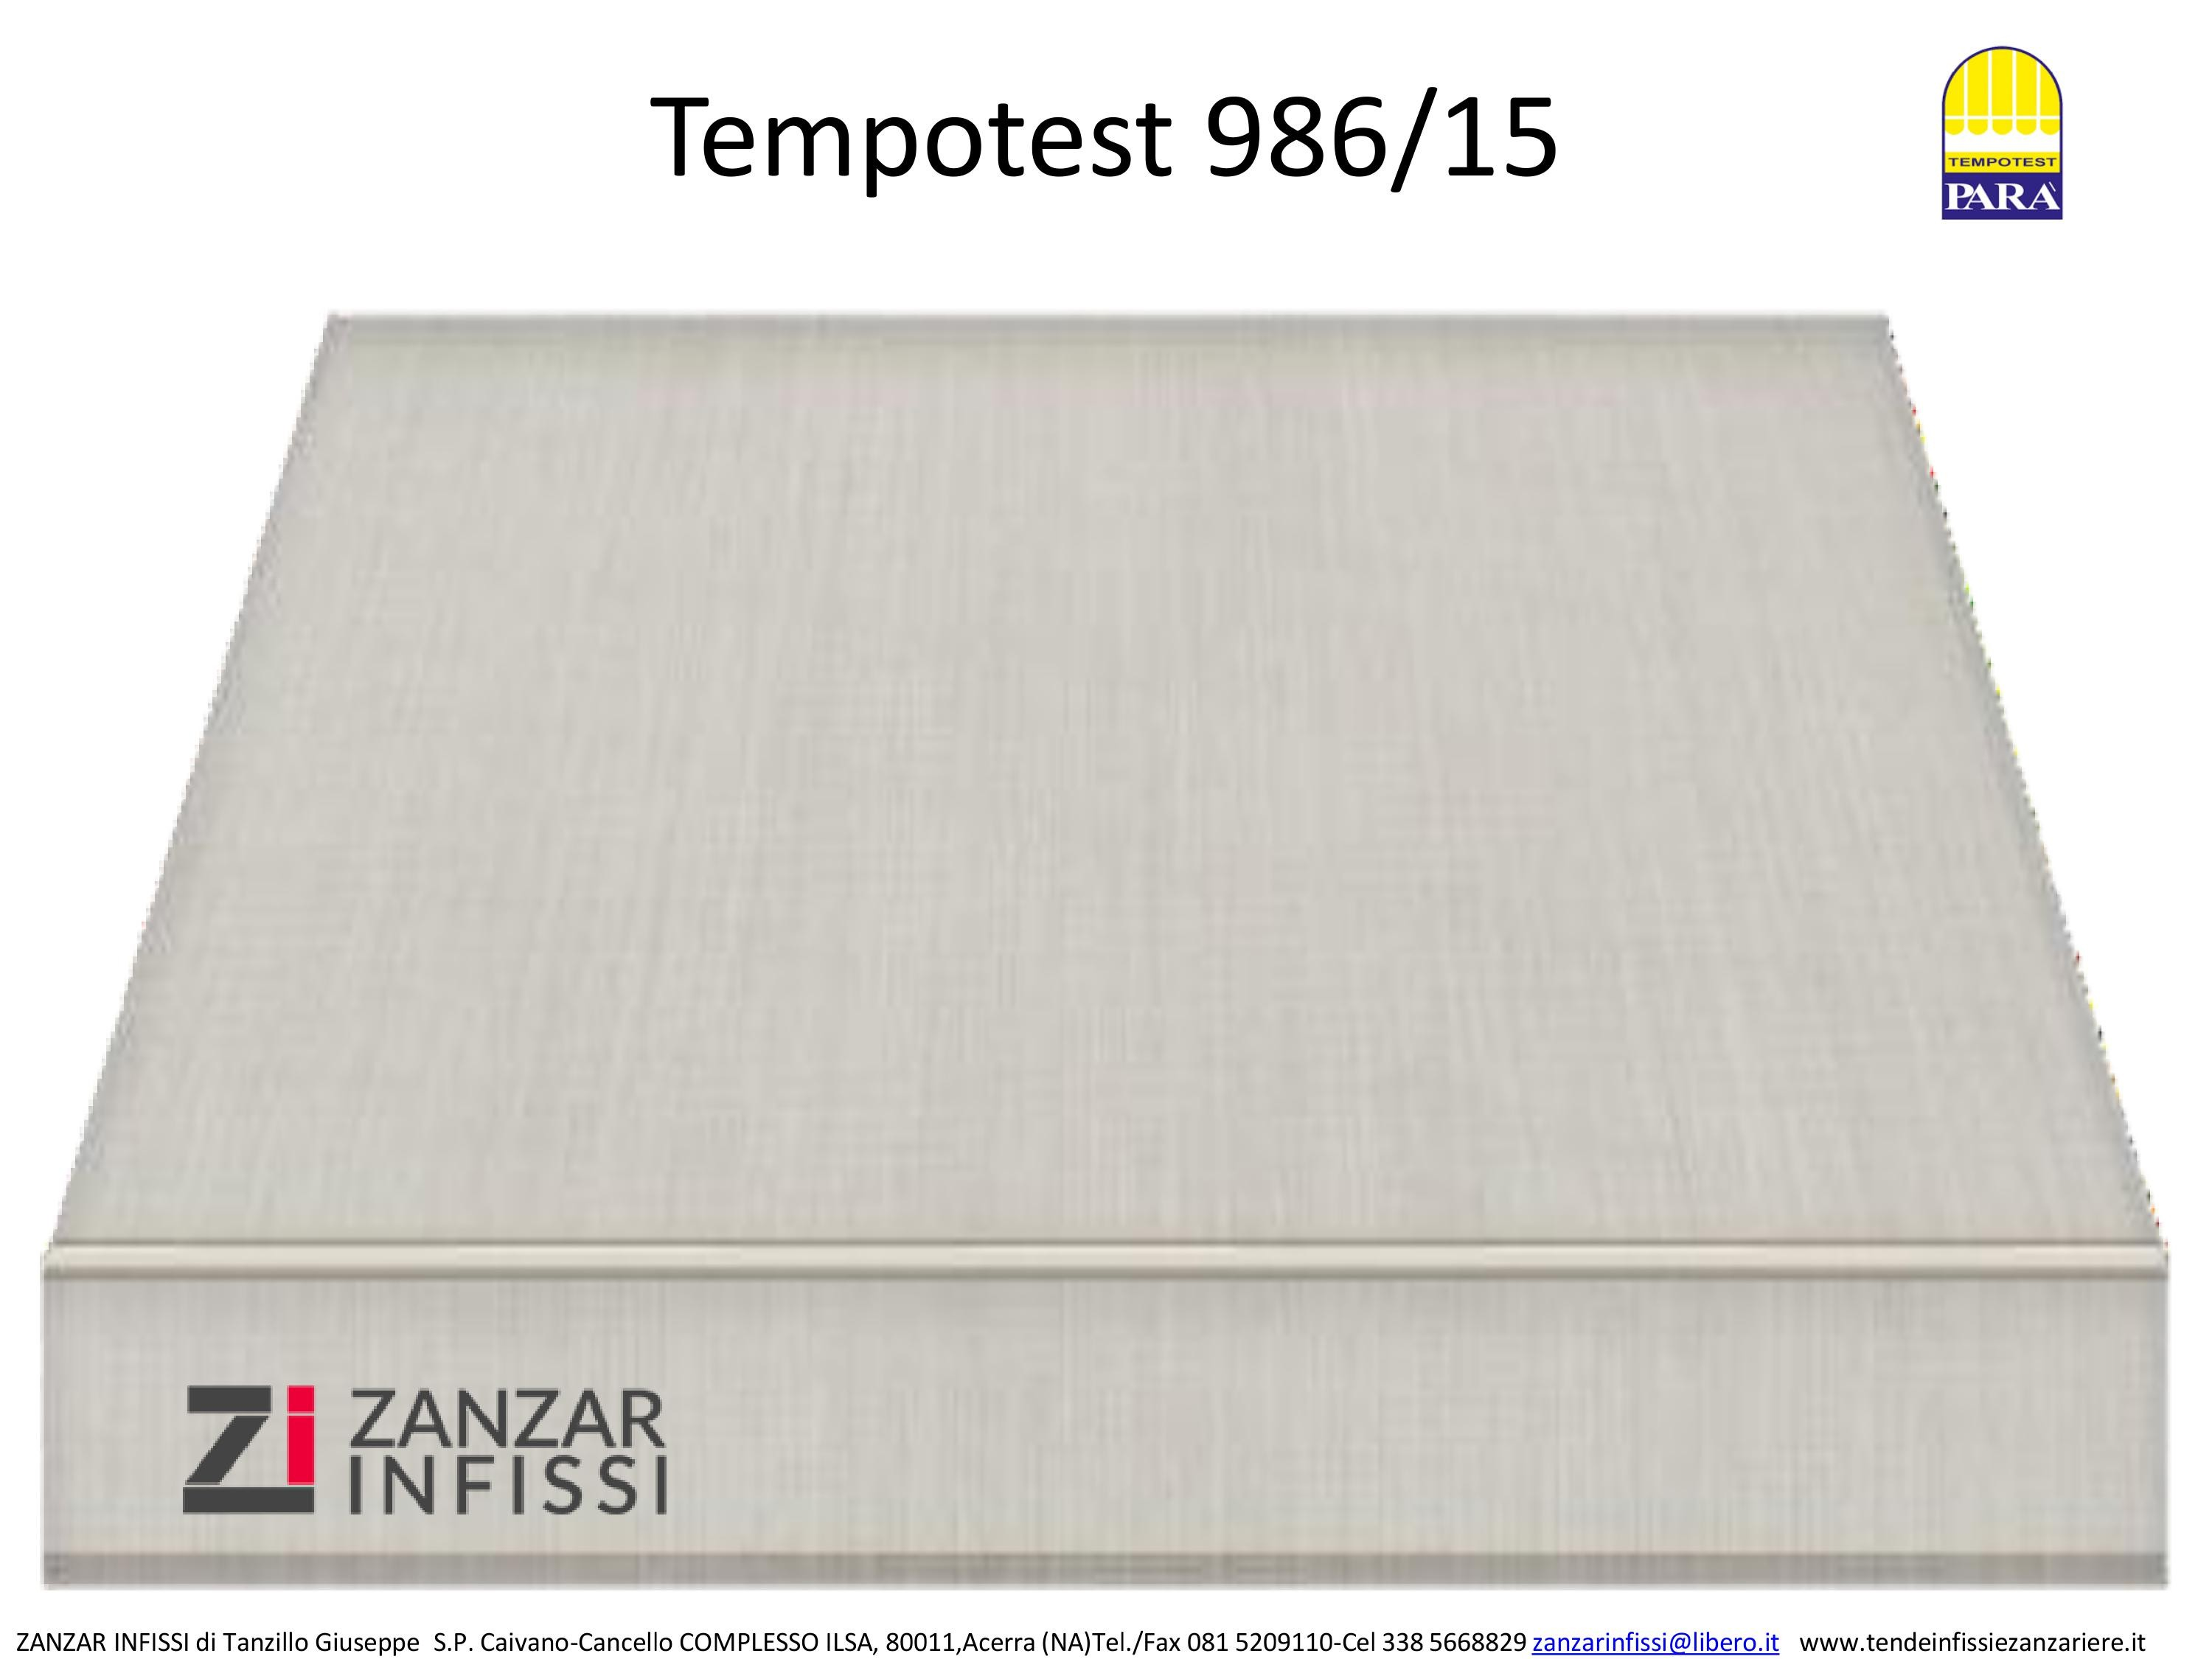 Tempotest 986/15